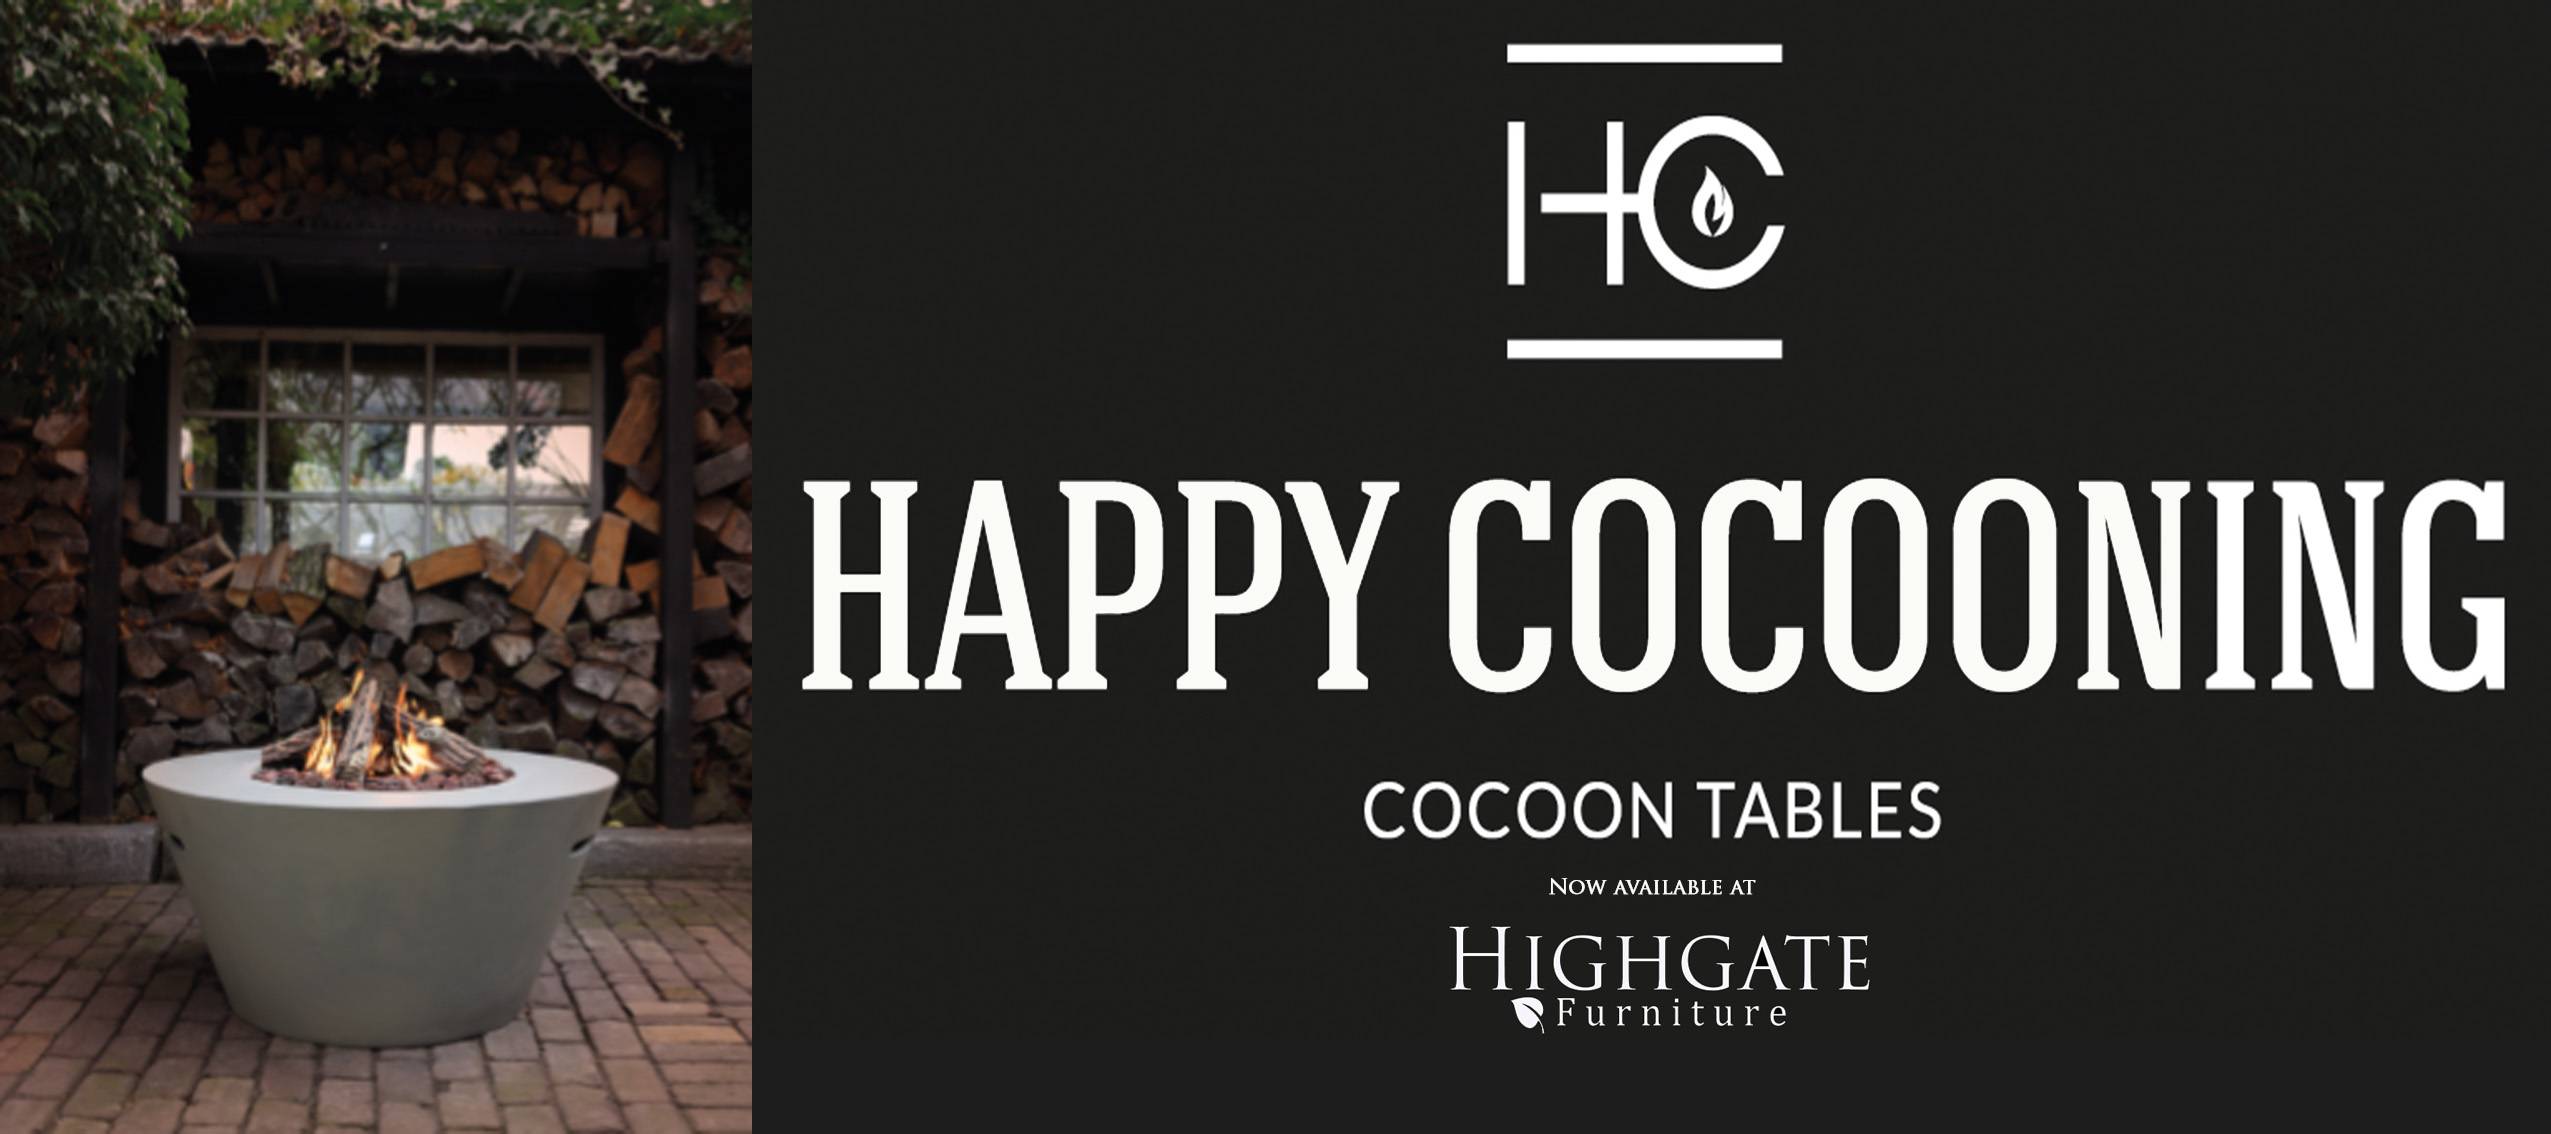 Happy Cocooning Now available at Highgate Furniture Southend On Sea Essex